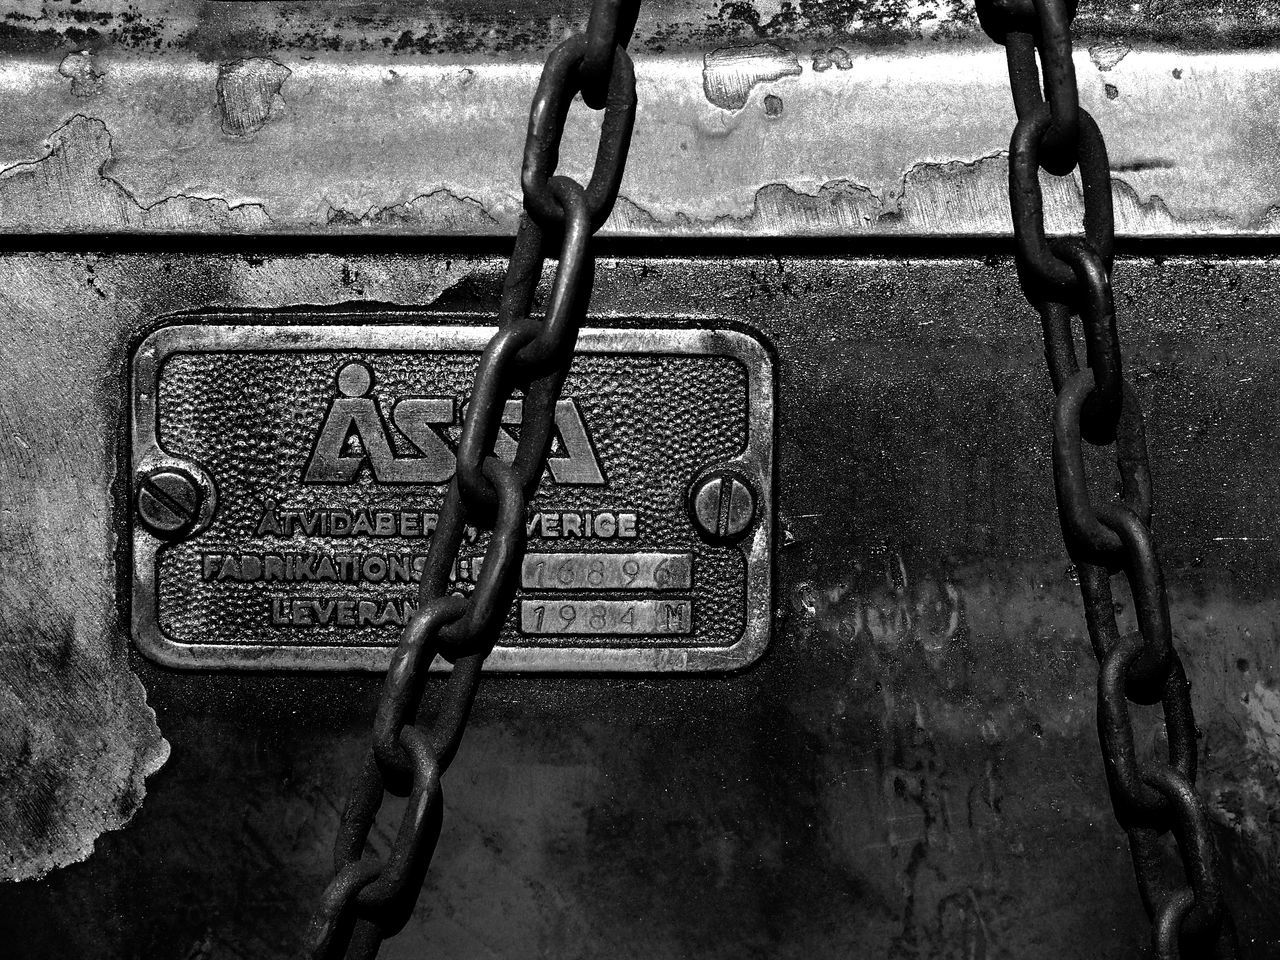 metal, no people, text, transportation, communication, close-up, outdoors, day